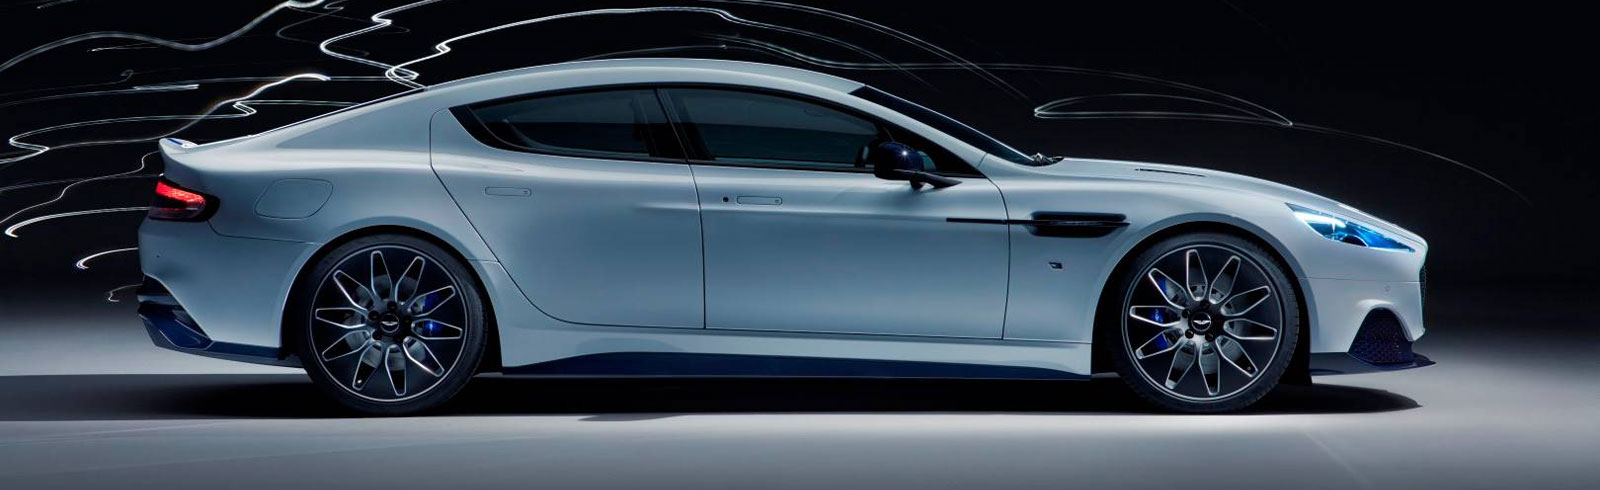 Rapide E The First All Electric Aston Martin Goes Official With A 65 Kwh Battery